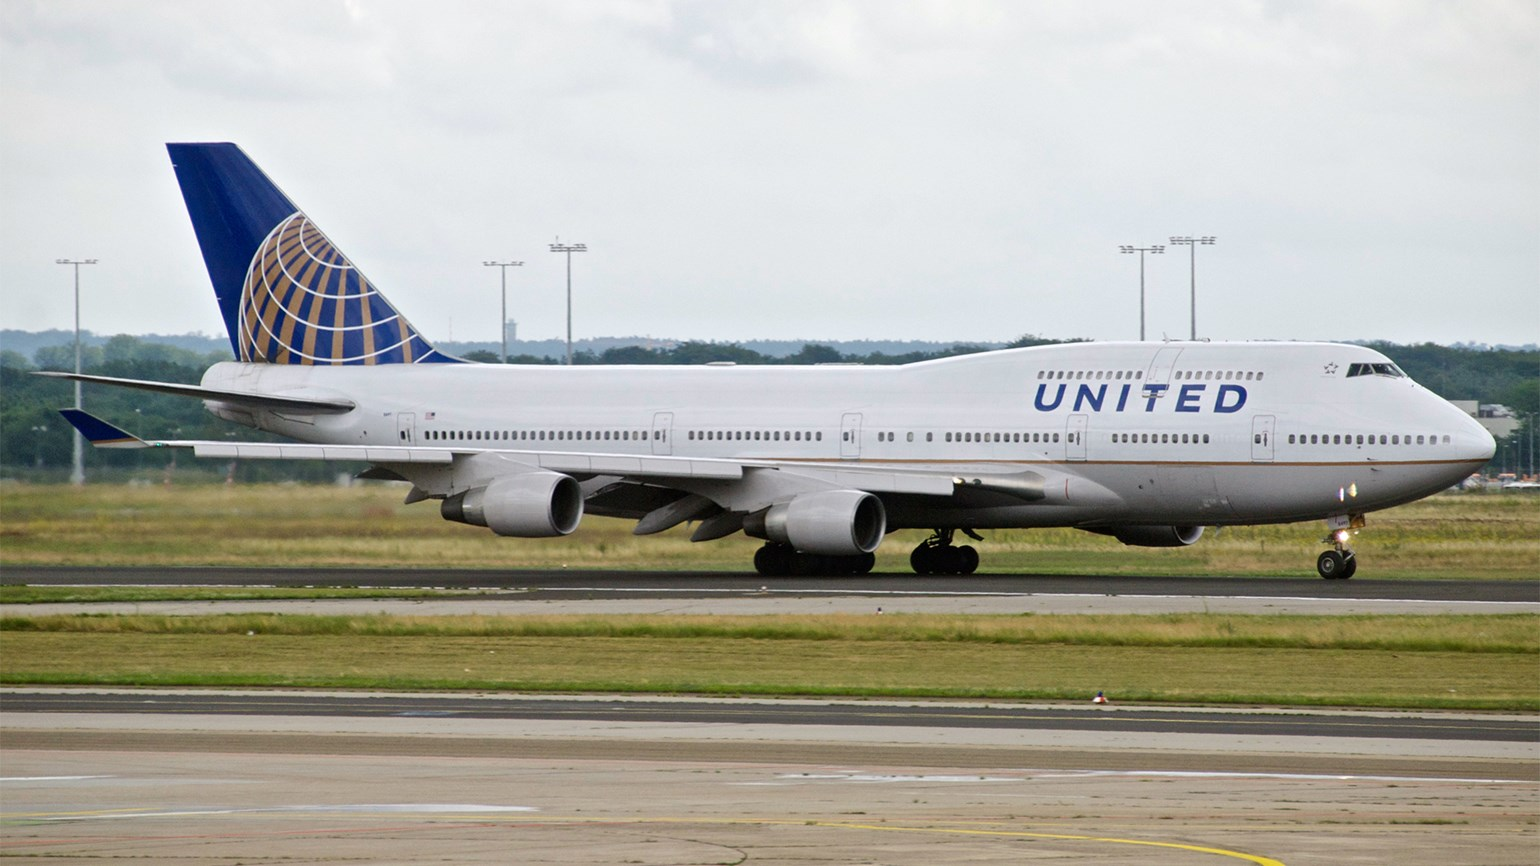 United to operate final 747 flight in 2017